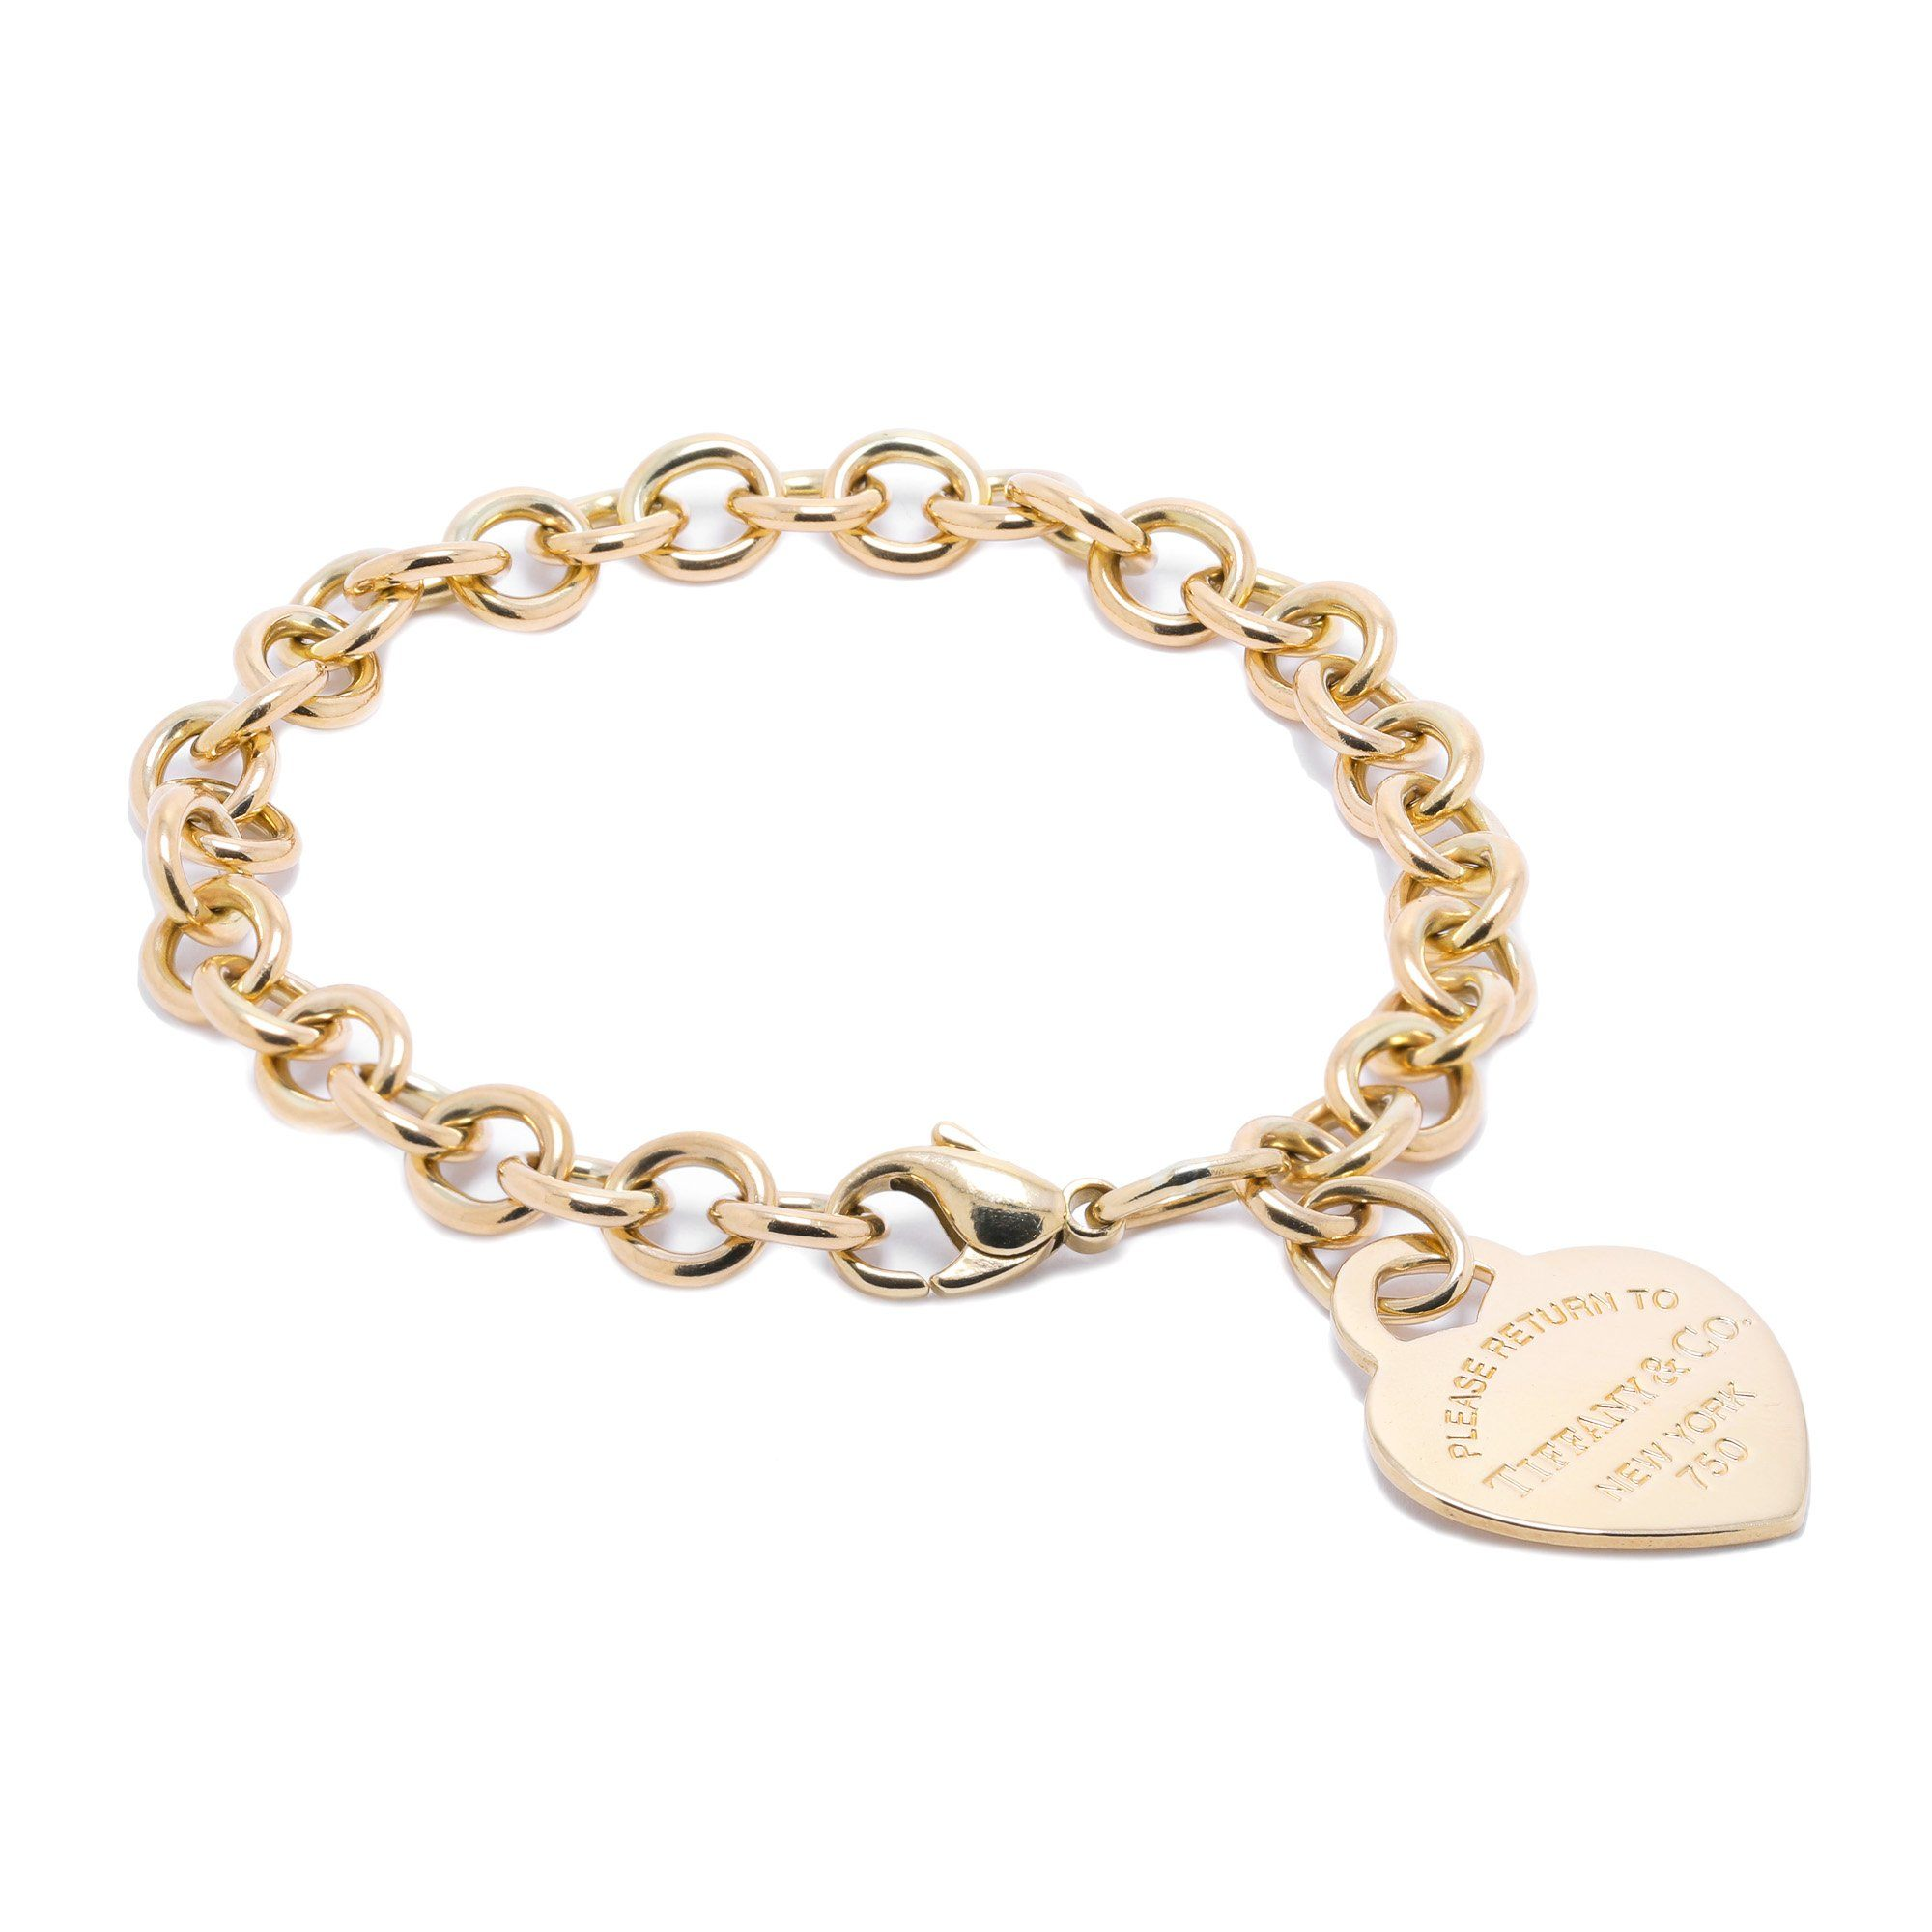 a363776df Tiffany & Co. 18k Gold Return to Tiffany Heart Tag Charm Bracelet Bracelets  Tiffany ...